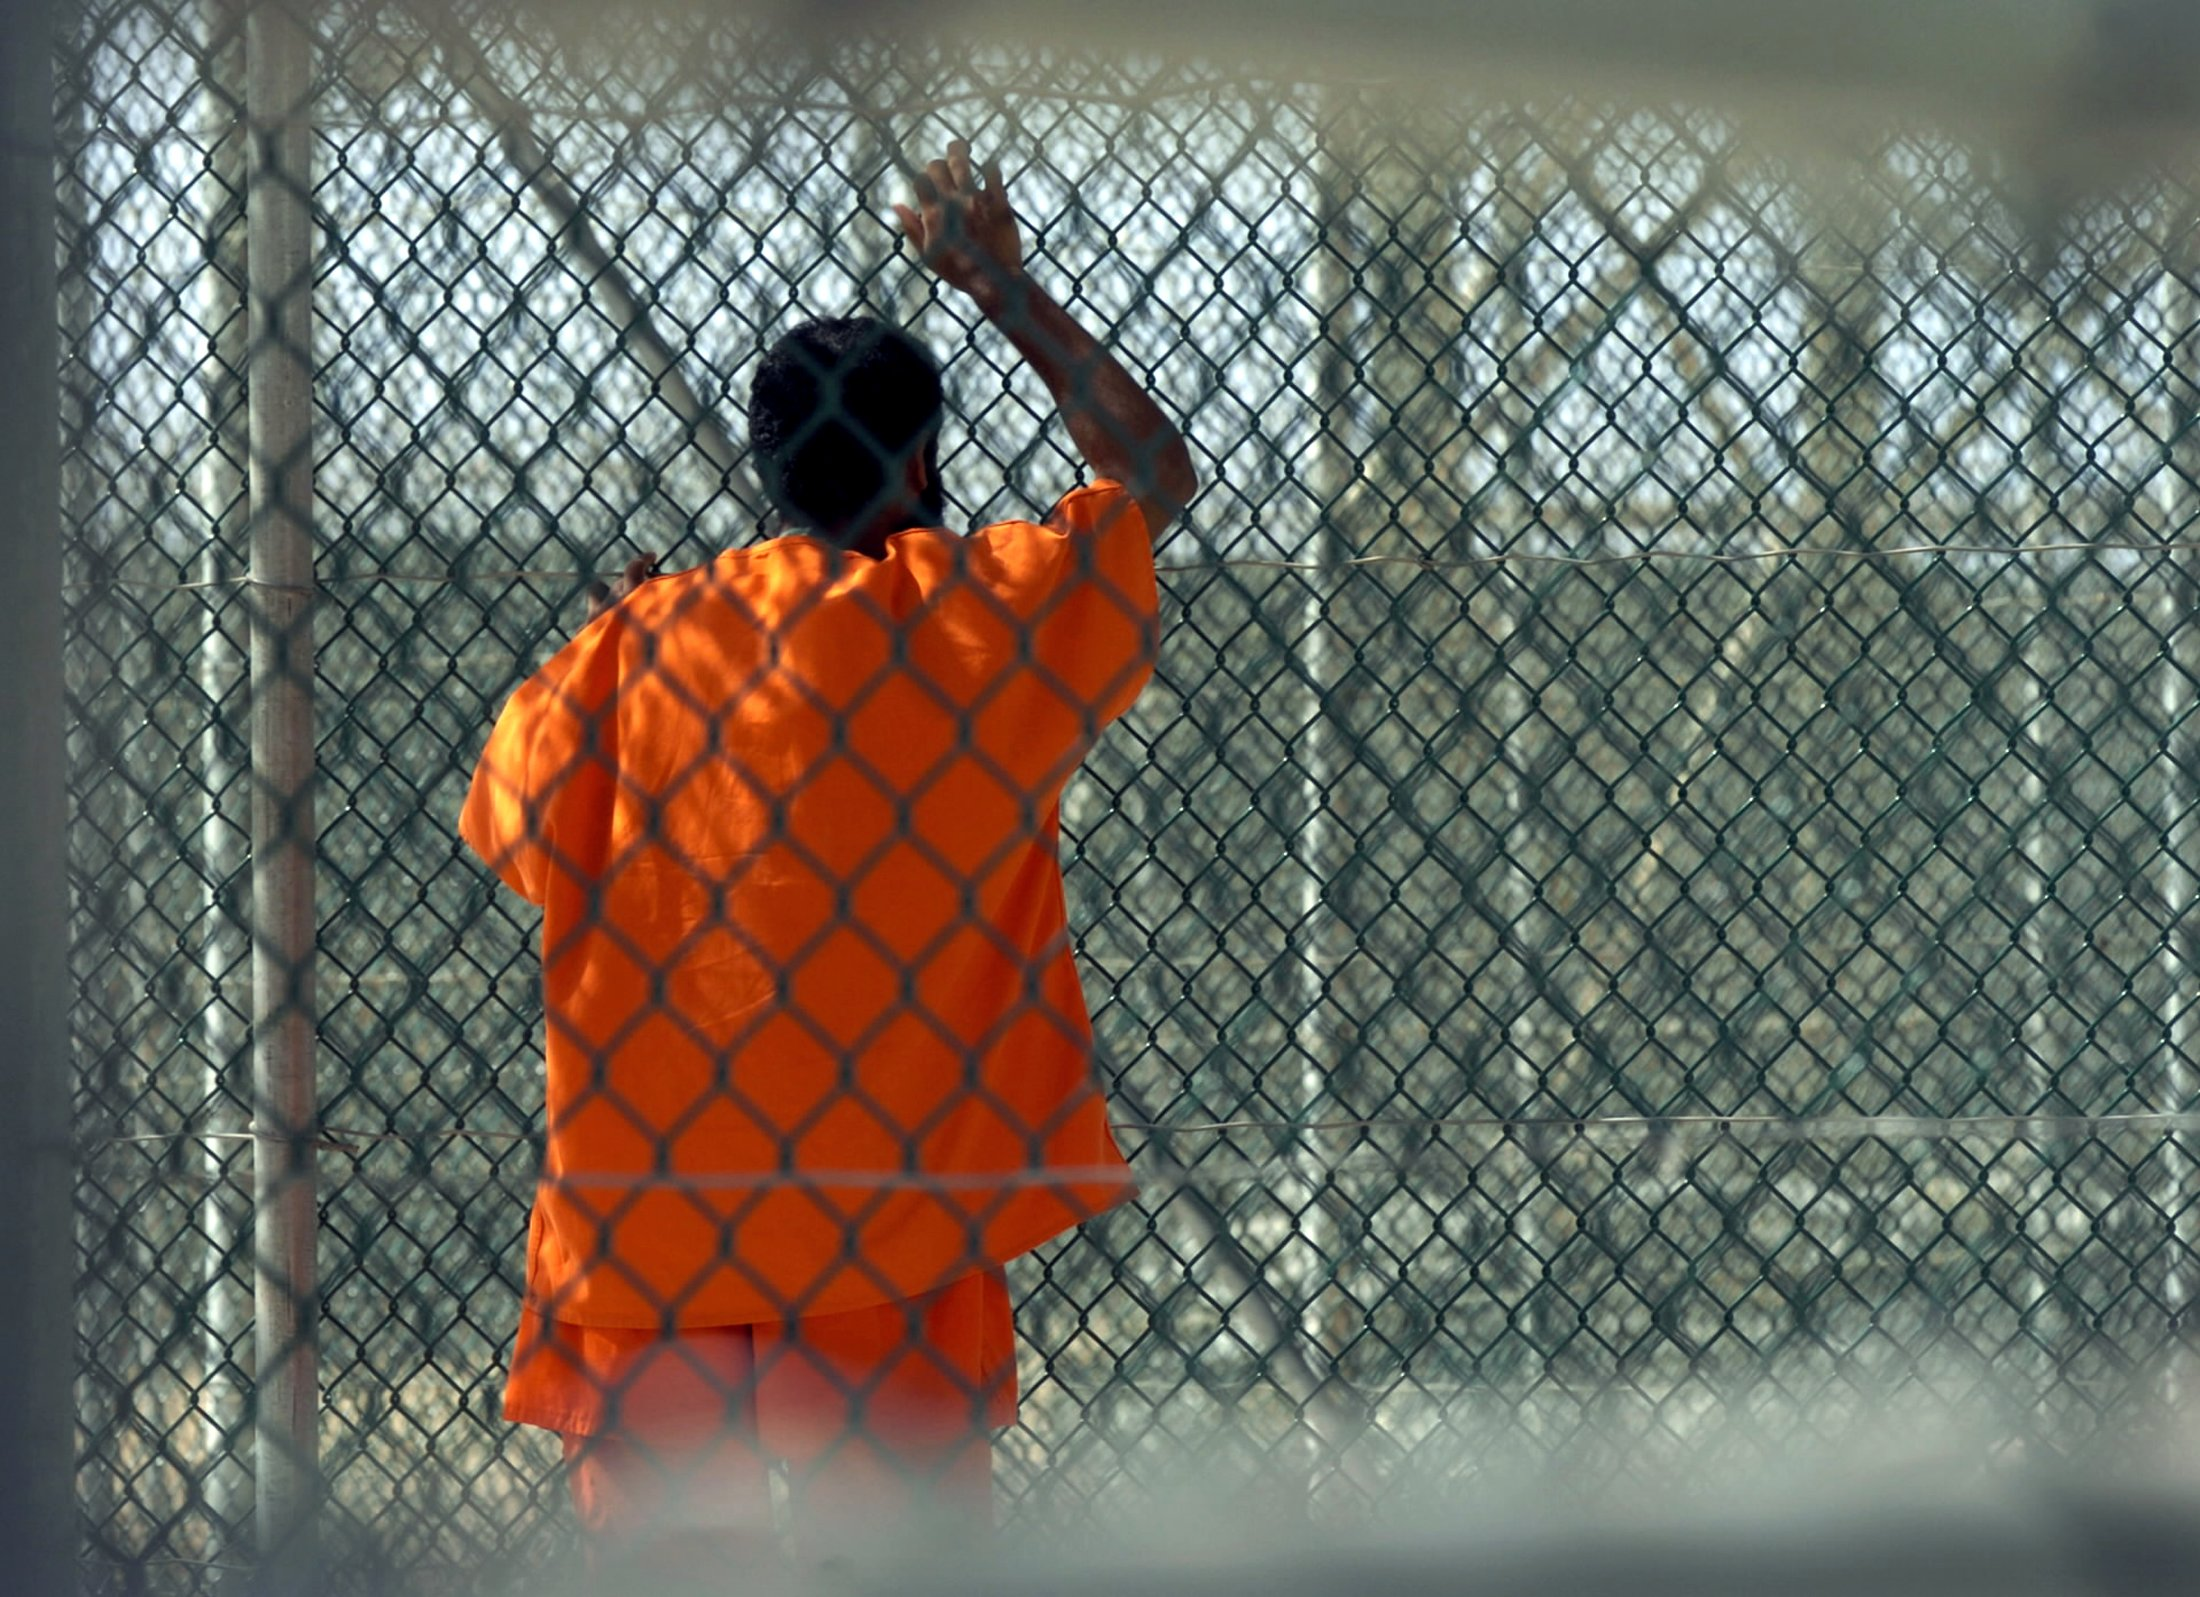 Newsela | Answers to key questions about Guantanamo detention center